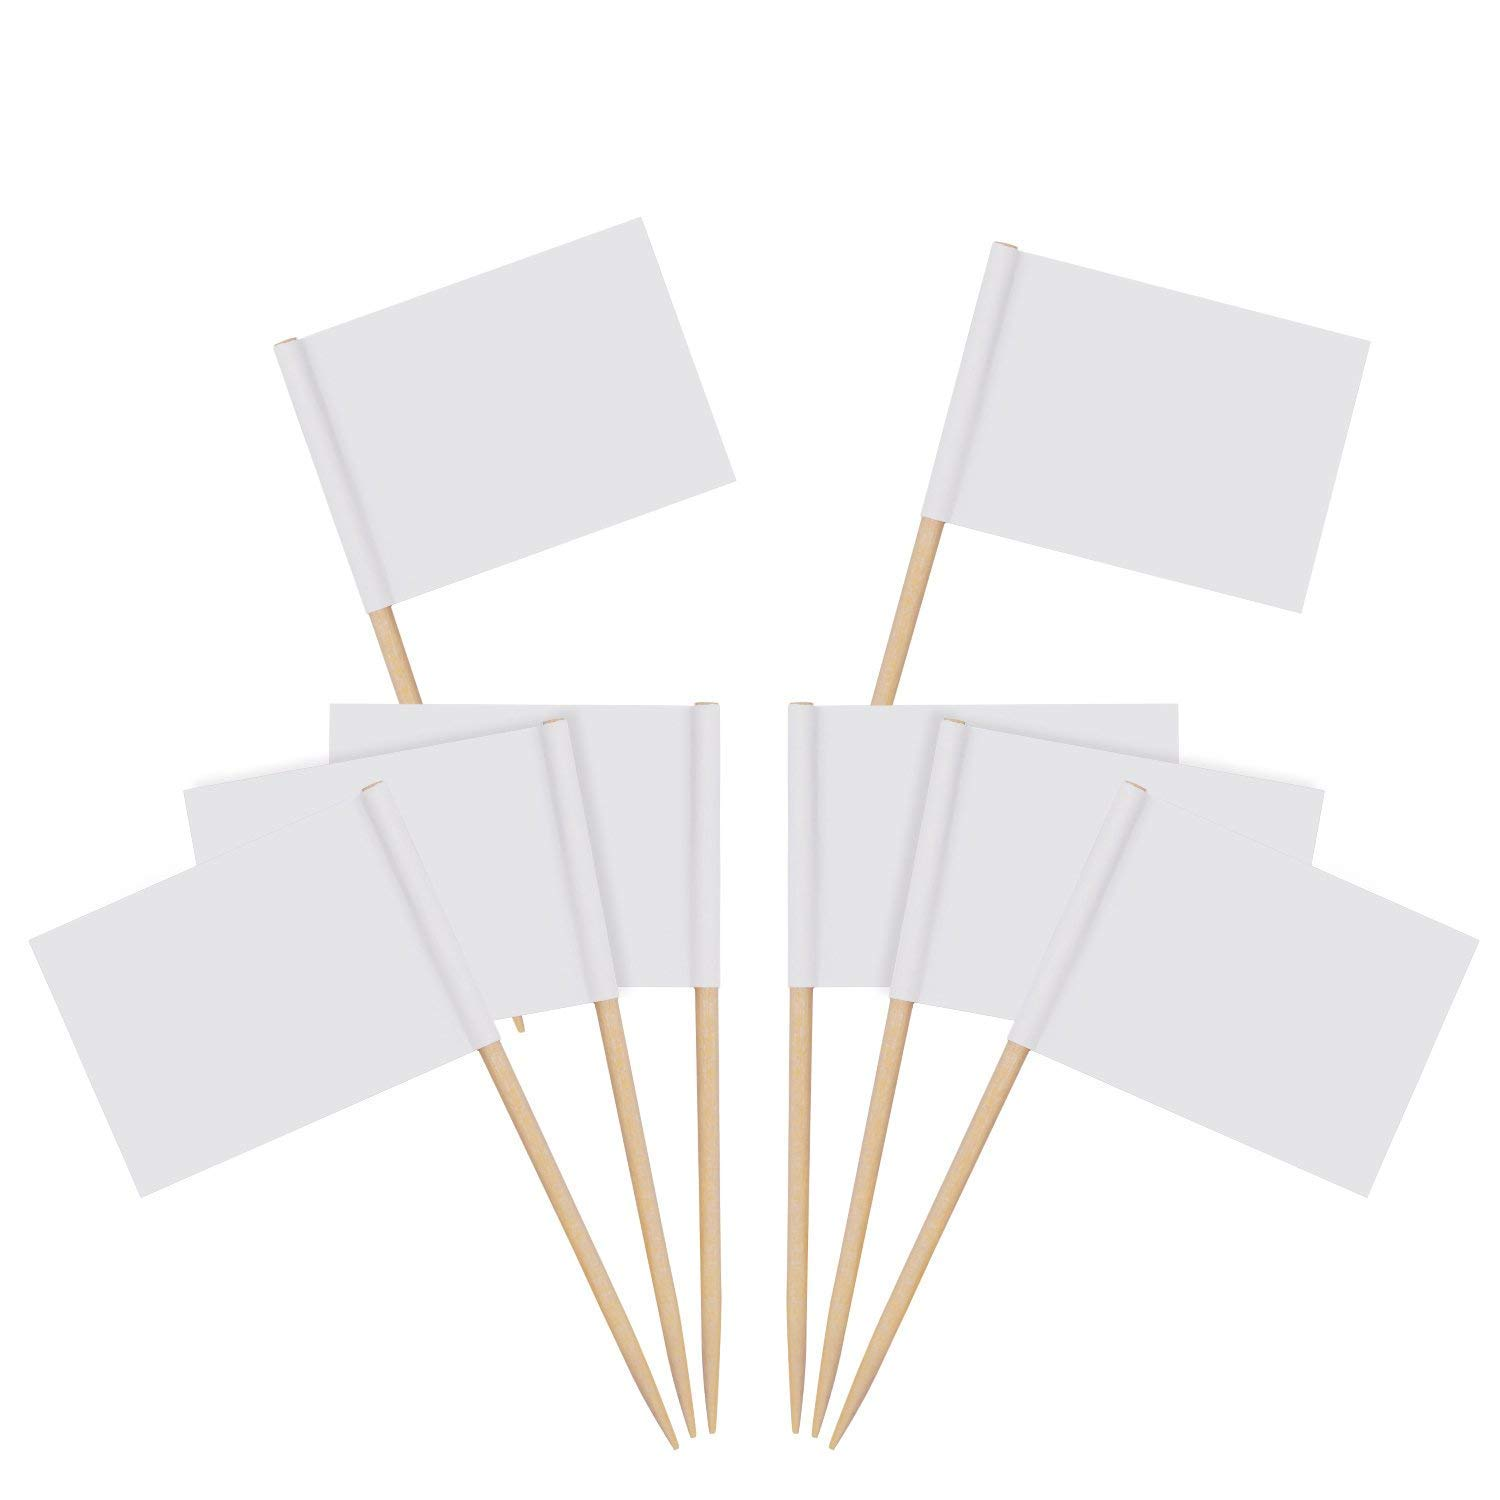 Zehhe Mini Blank White Flags Food Cheese Markers Labeling Picks for Cake Toothpicks Cupcake Decoration Fruit Cocktail Sticks Party Supplies (400)